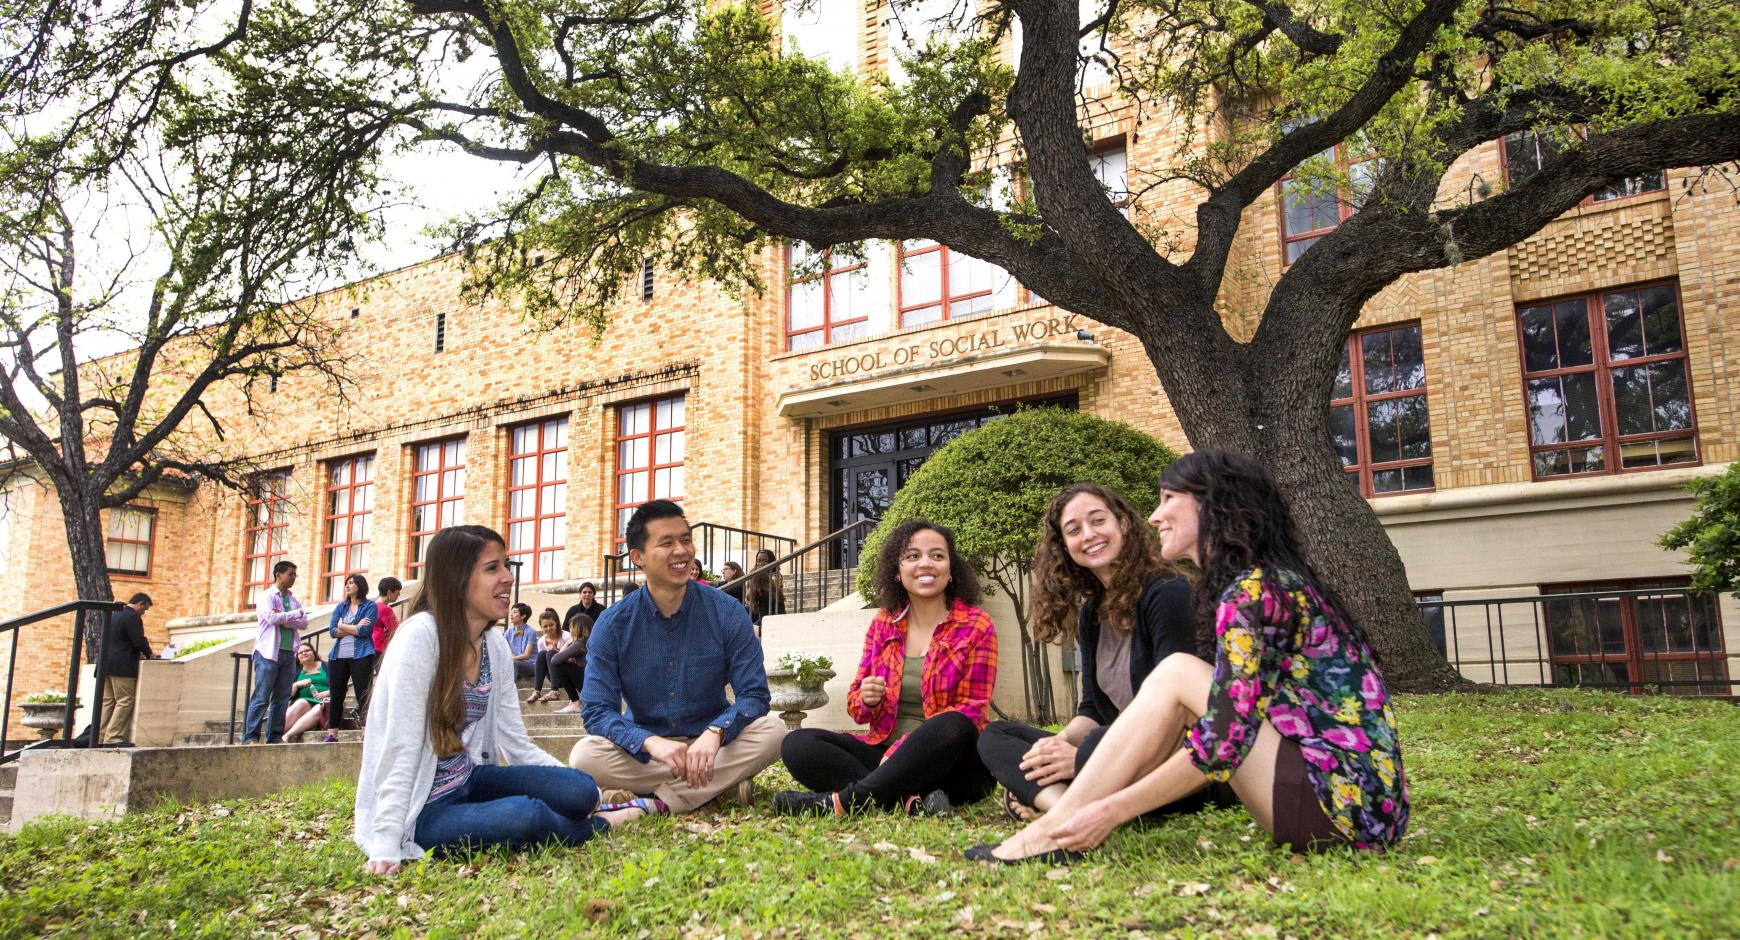 Social work students outside on lawn in front of school building.